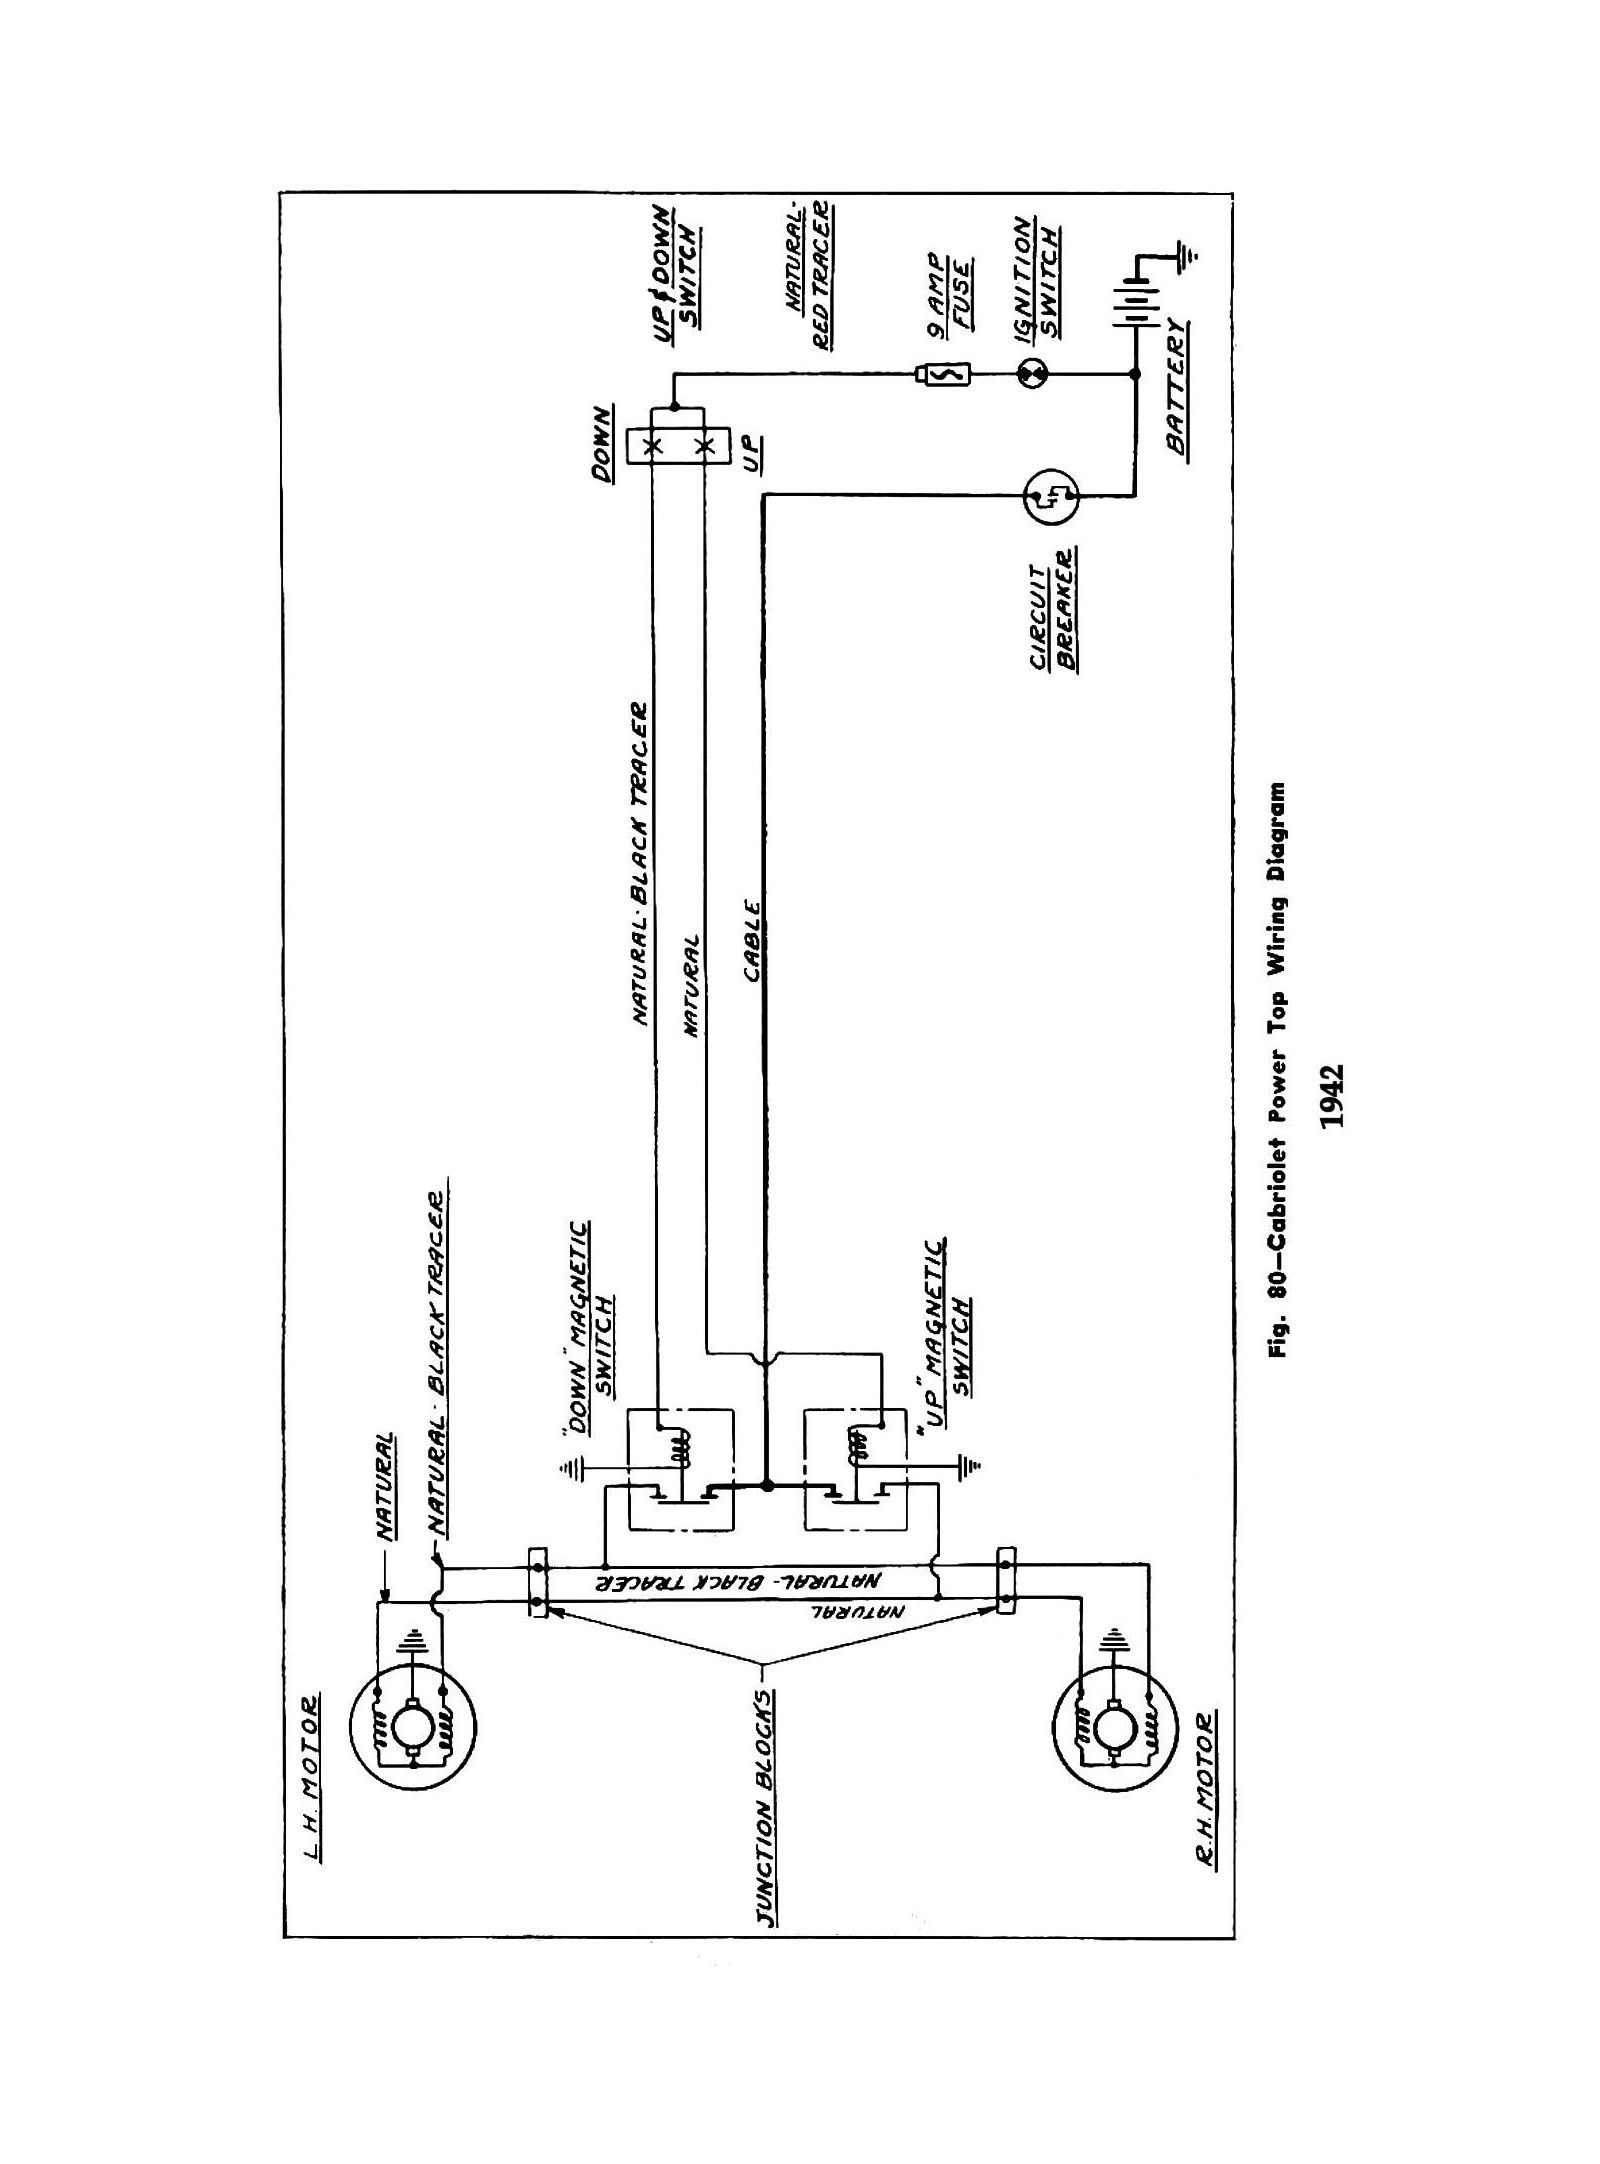 Chevy Wiring Diagrams Dodge Pickup Diagram 1942 Truck Cabriolet Power Top